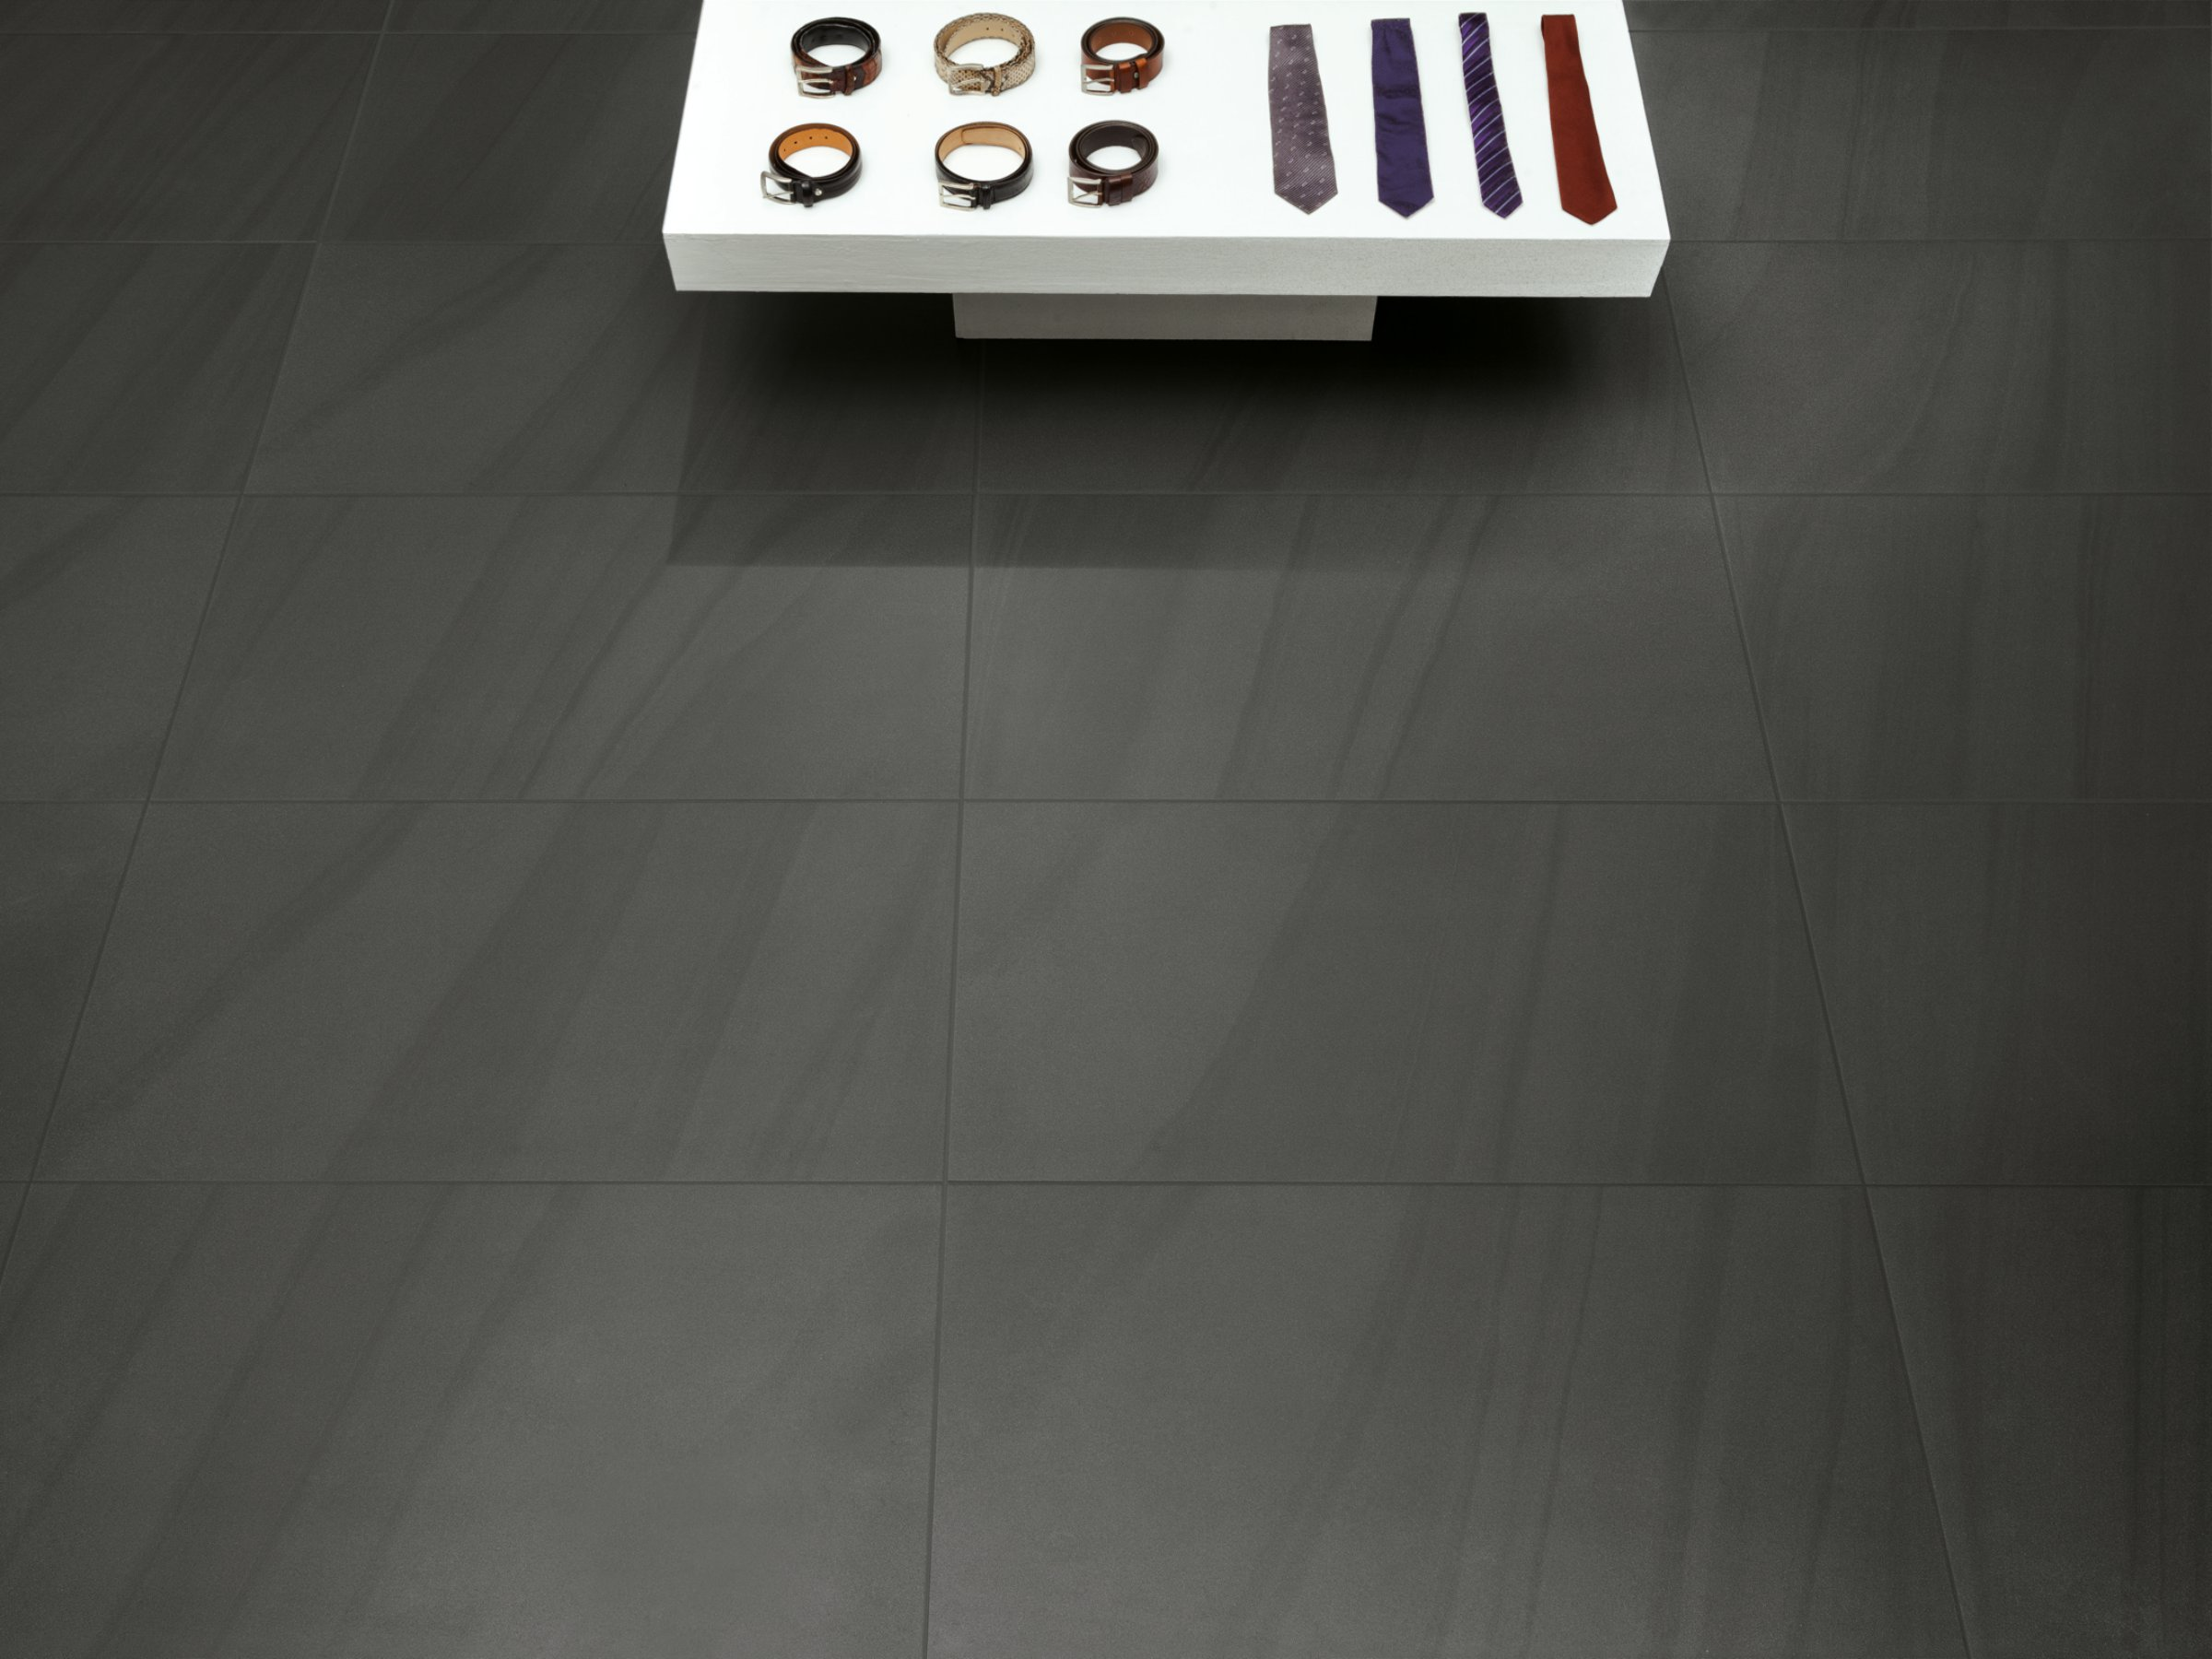 Rev tement de sol mur en gr s c rame flow collection flow by ceramiche caesar - Revetement de sol en coco ...